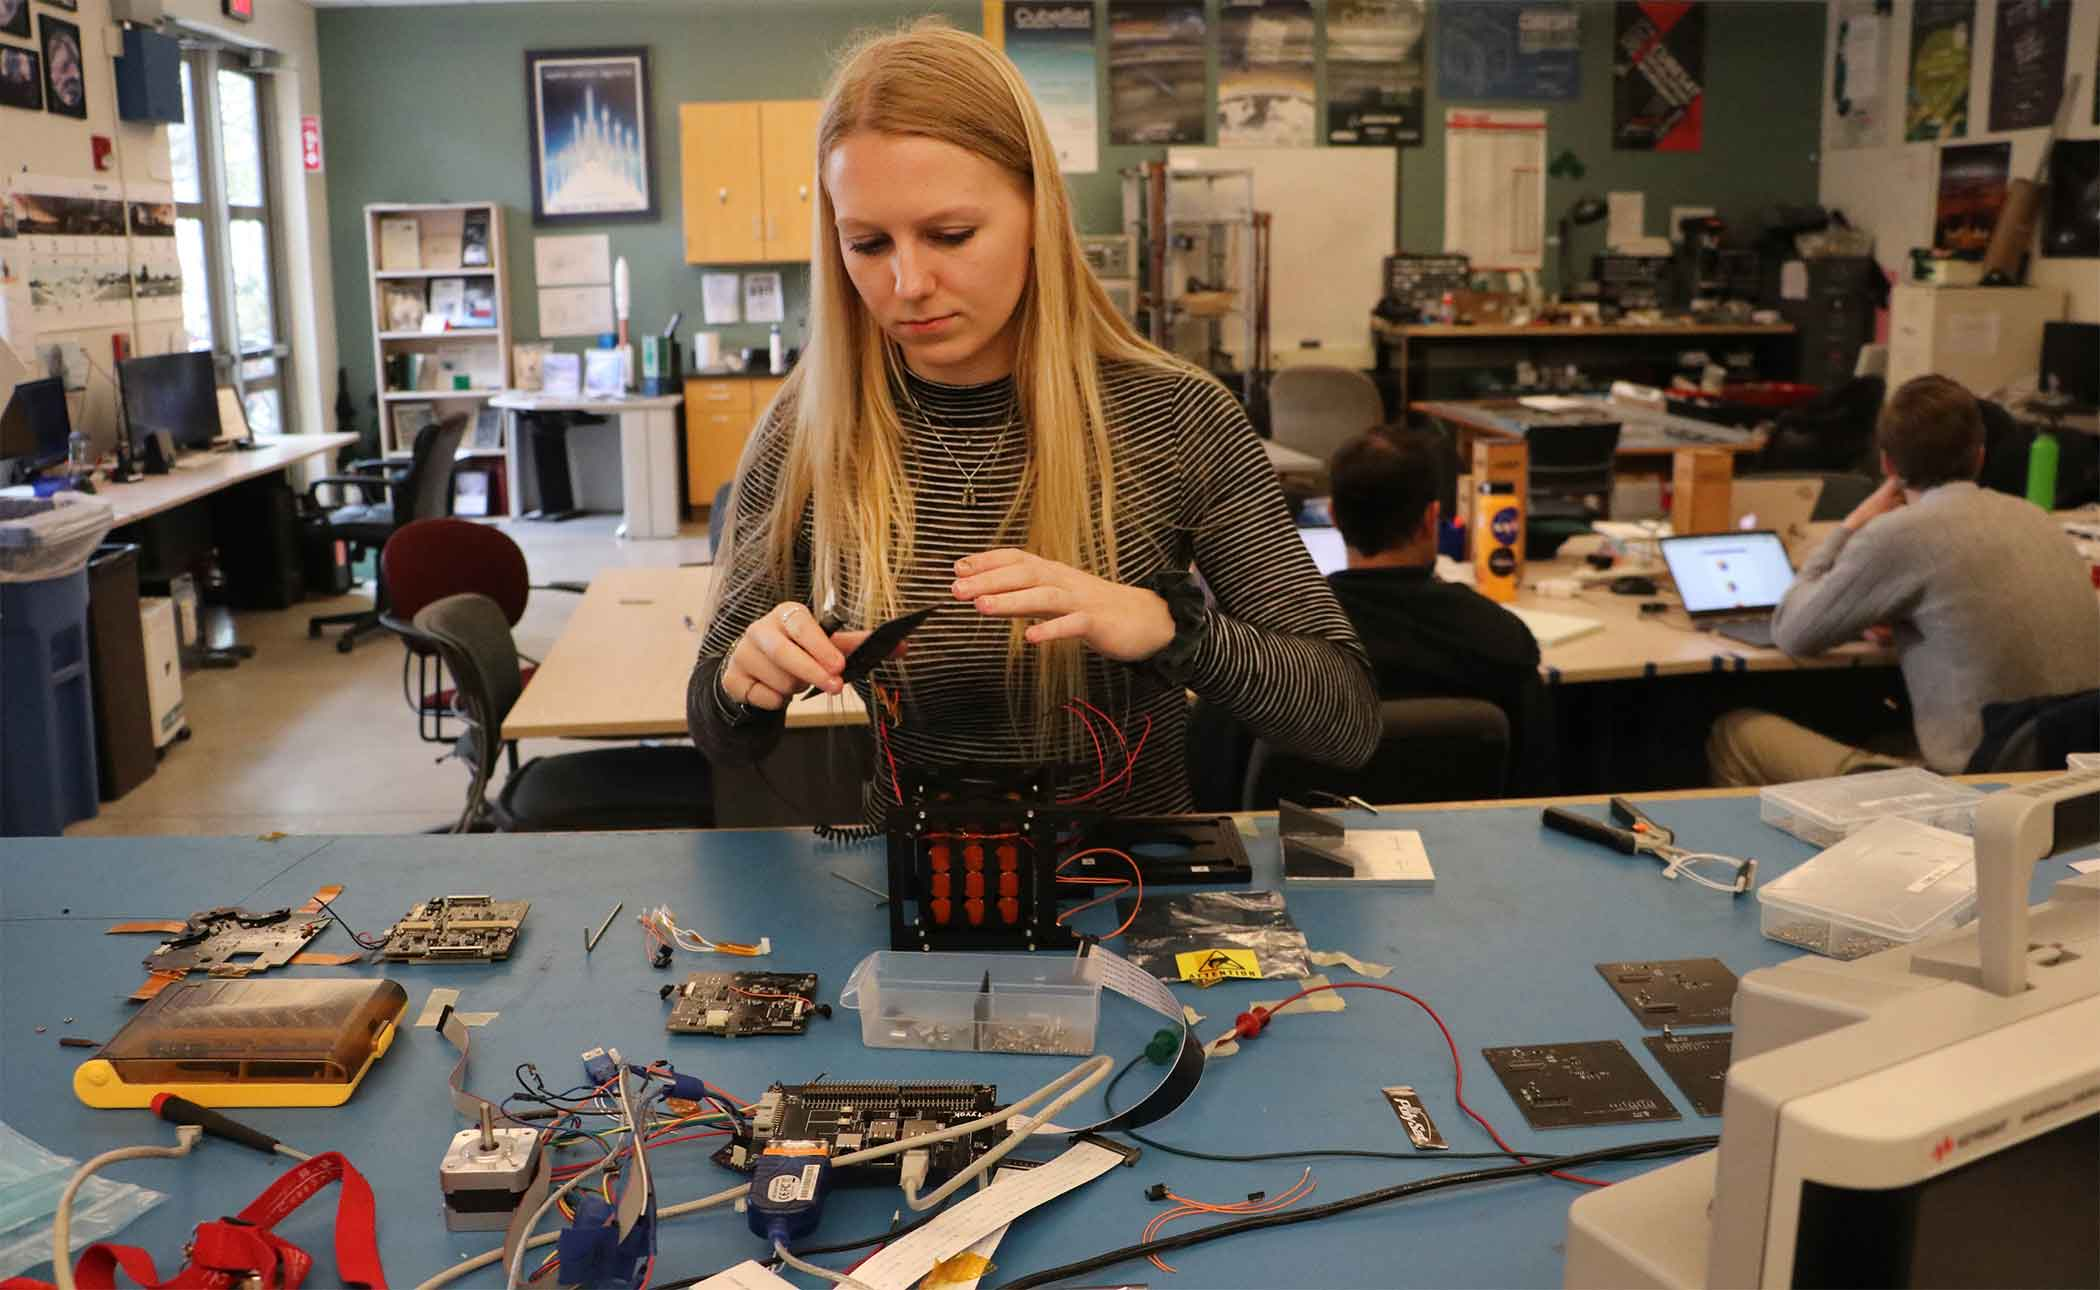 Brigitte Petersen, an aerospace engineering student, is the project manager for two Cal Poly CubeSat missions that will test drag sails as a means to safely deorbit miniature satellites. A partnership with the Air Force Research Laboratory will help Cal Poly explore propulsion techniques for CubeSats.